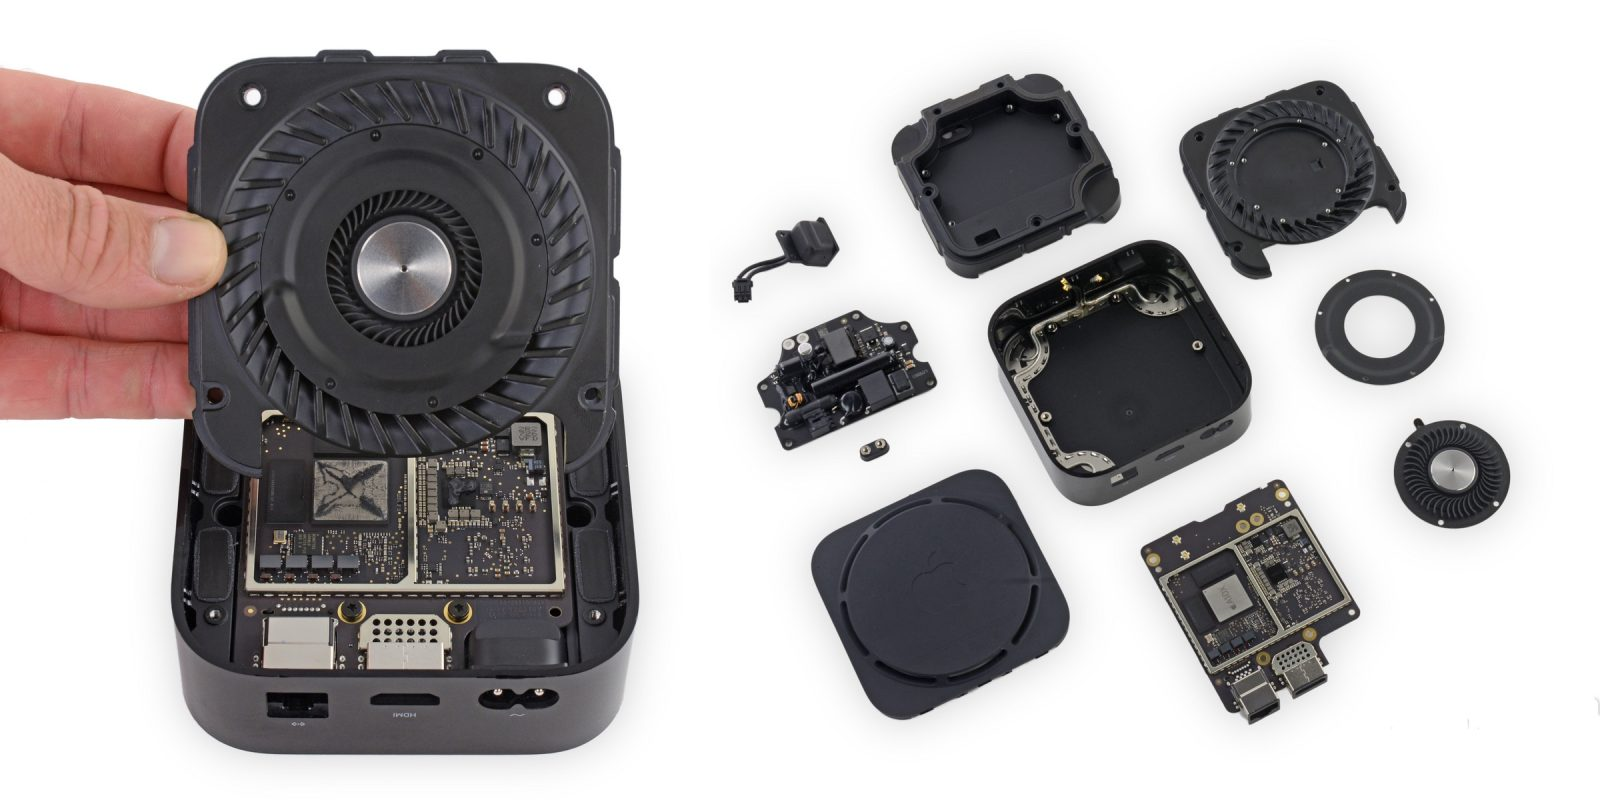 Apple TV 4K teardown shows off internal fan and new thermal